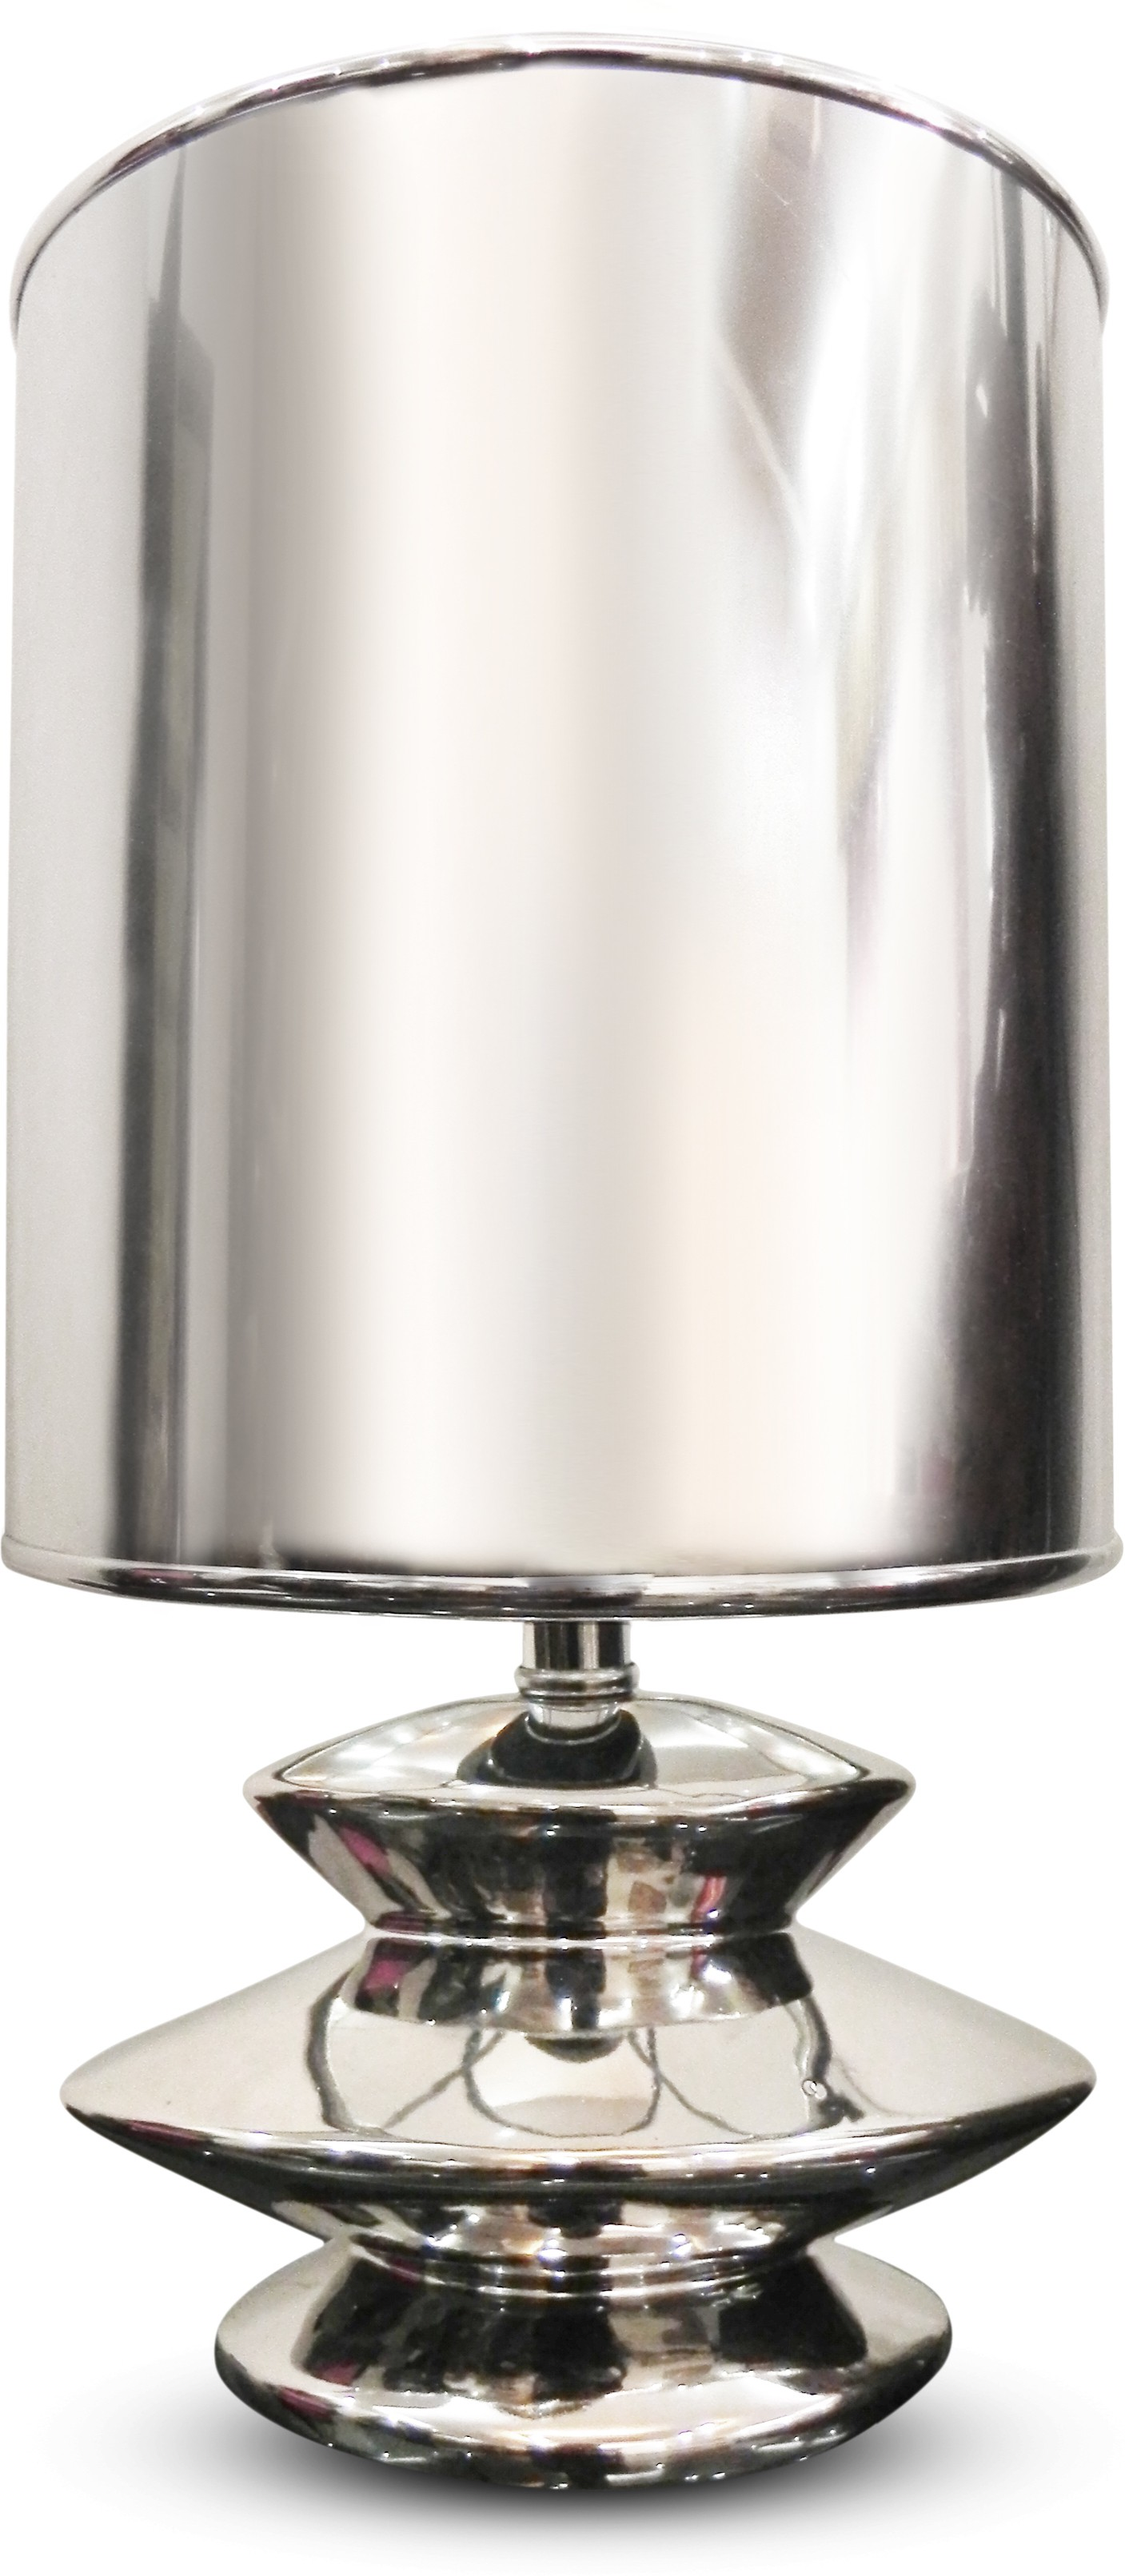 Calmistry Silver Metallic Table Lamp